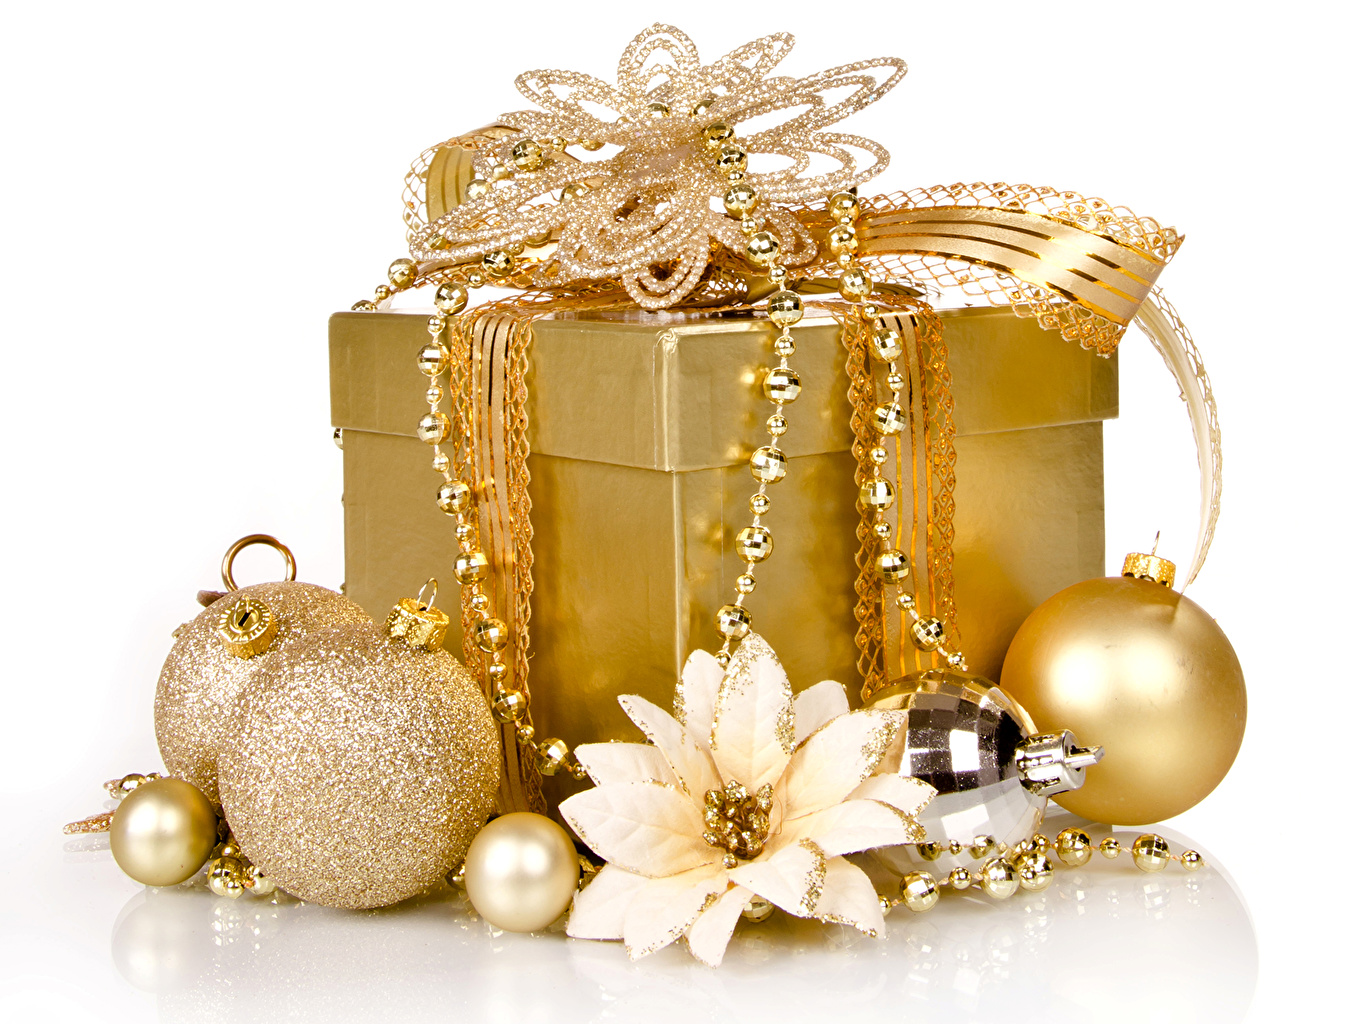 Pictures New year Gold color Box present Balls White background Jewelry Christmas Gifts